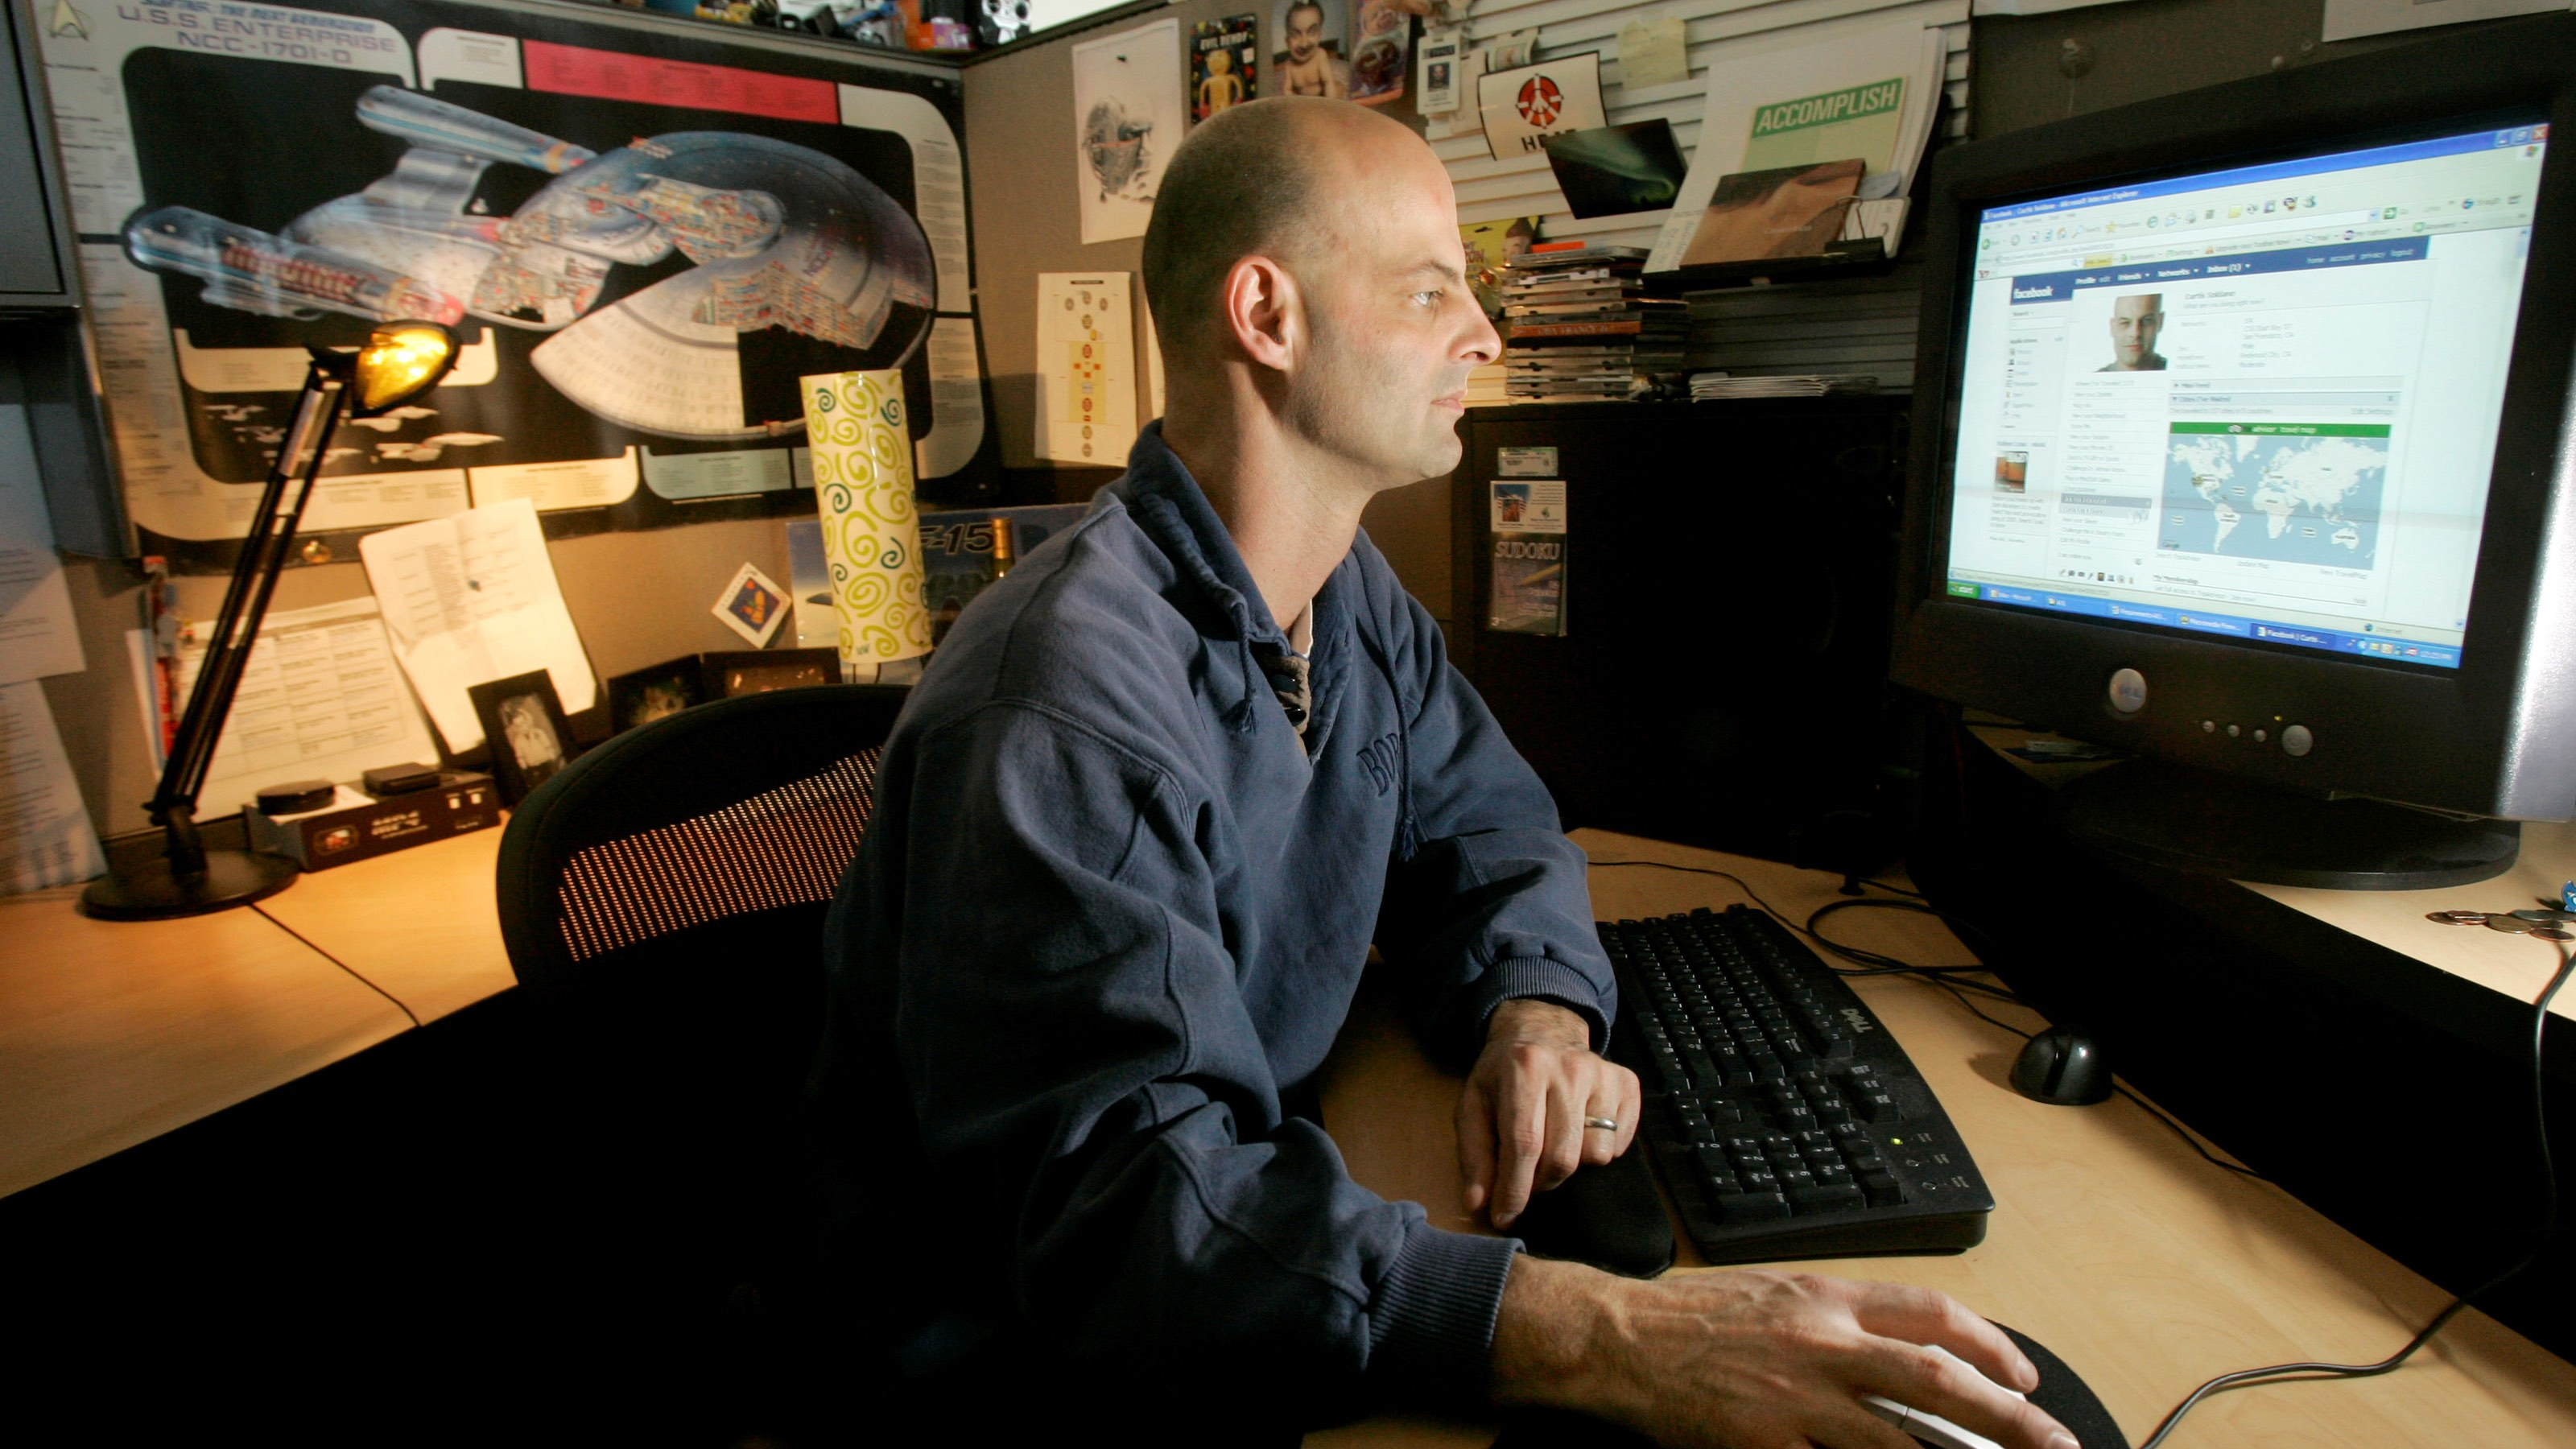 Curtis Soldano, associate producer at Electronic Arts, looks at his Facebook page at his cubicle in Redwood City, Calif., Thursday, Jan. 17, 2008. (AP Photo/Jeff Chiu)